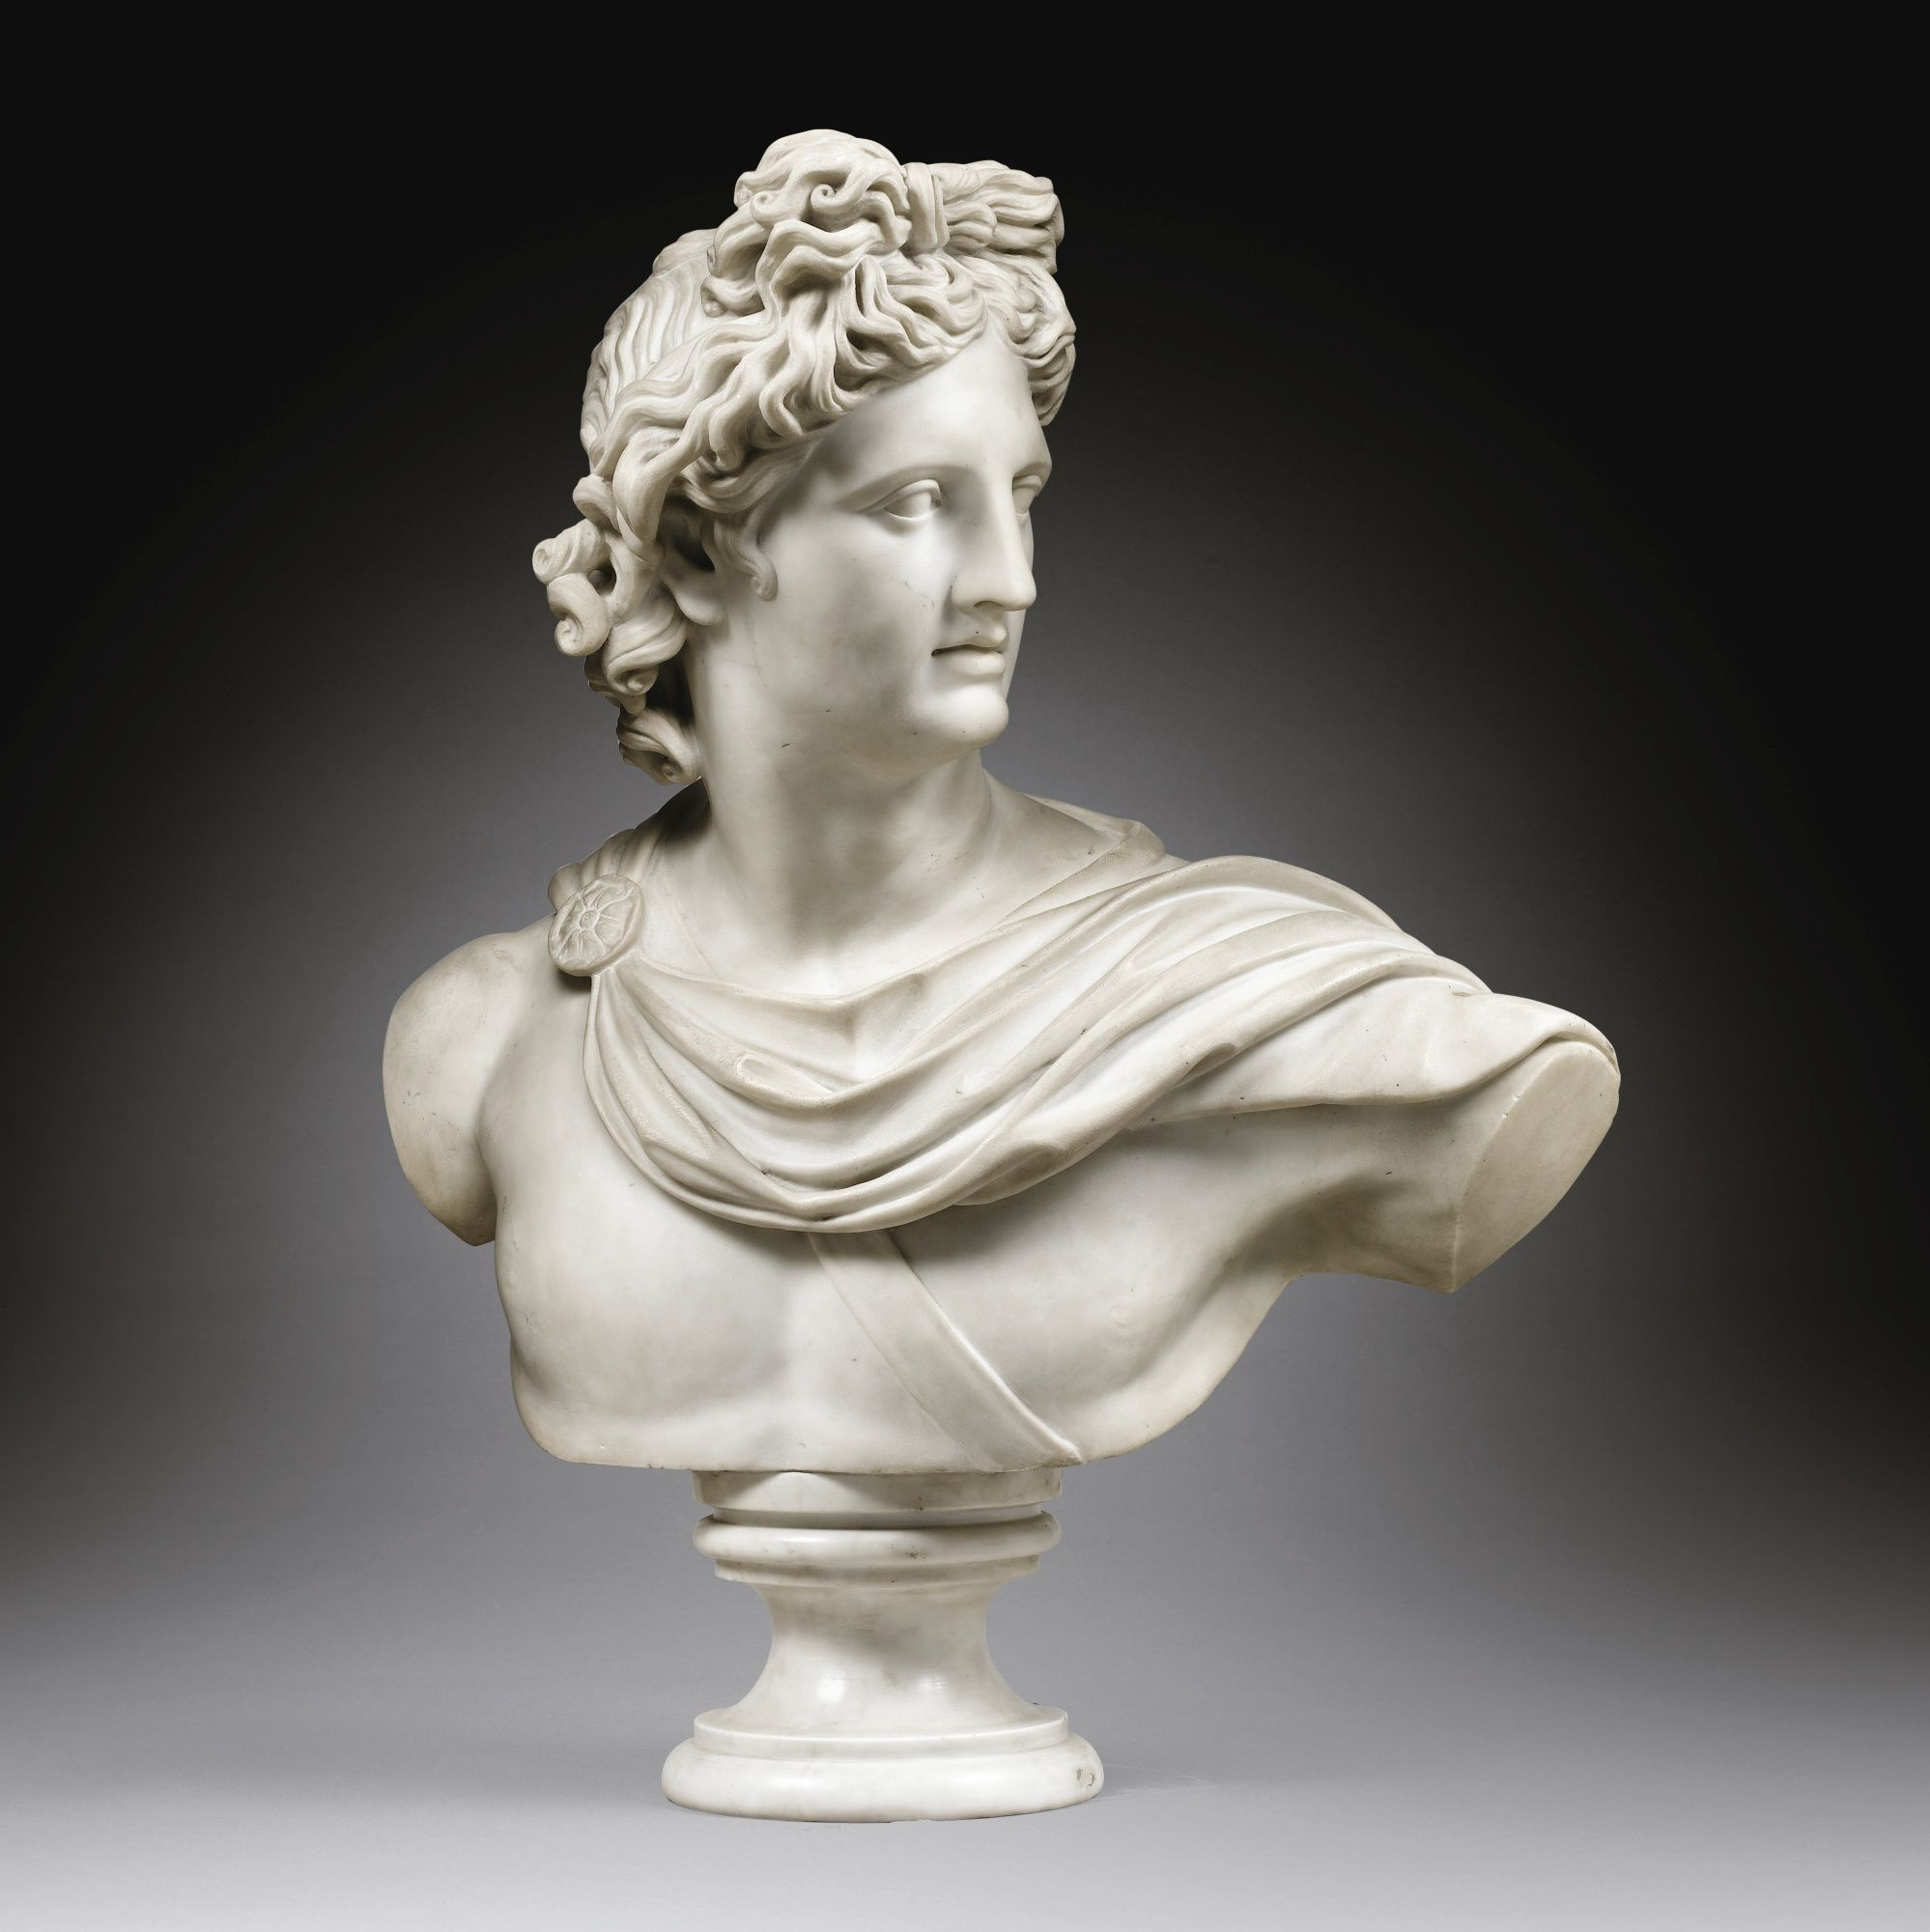 After The Antique Rome Early 19th Century Bust Of Apollo Marble On A Grey Marble Base 82 X 63 Cm 32 1 4 By 24 3 4 In Apollo Statue 19th Century Art Statue